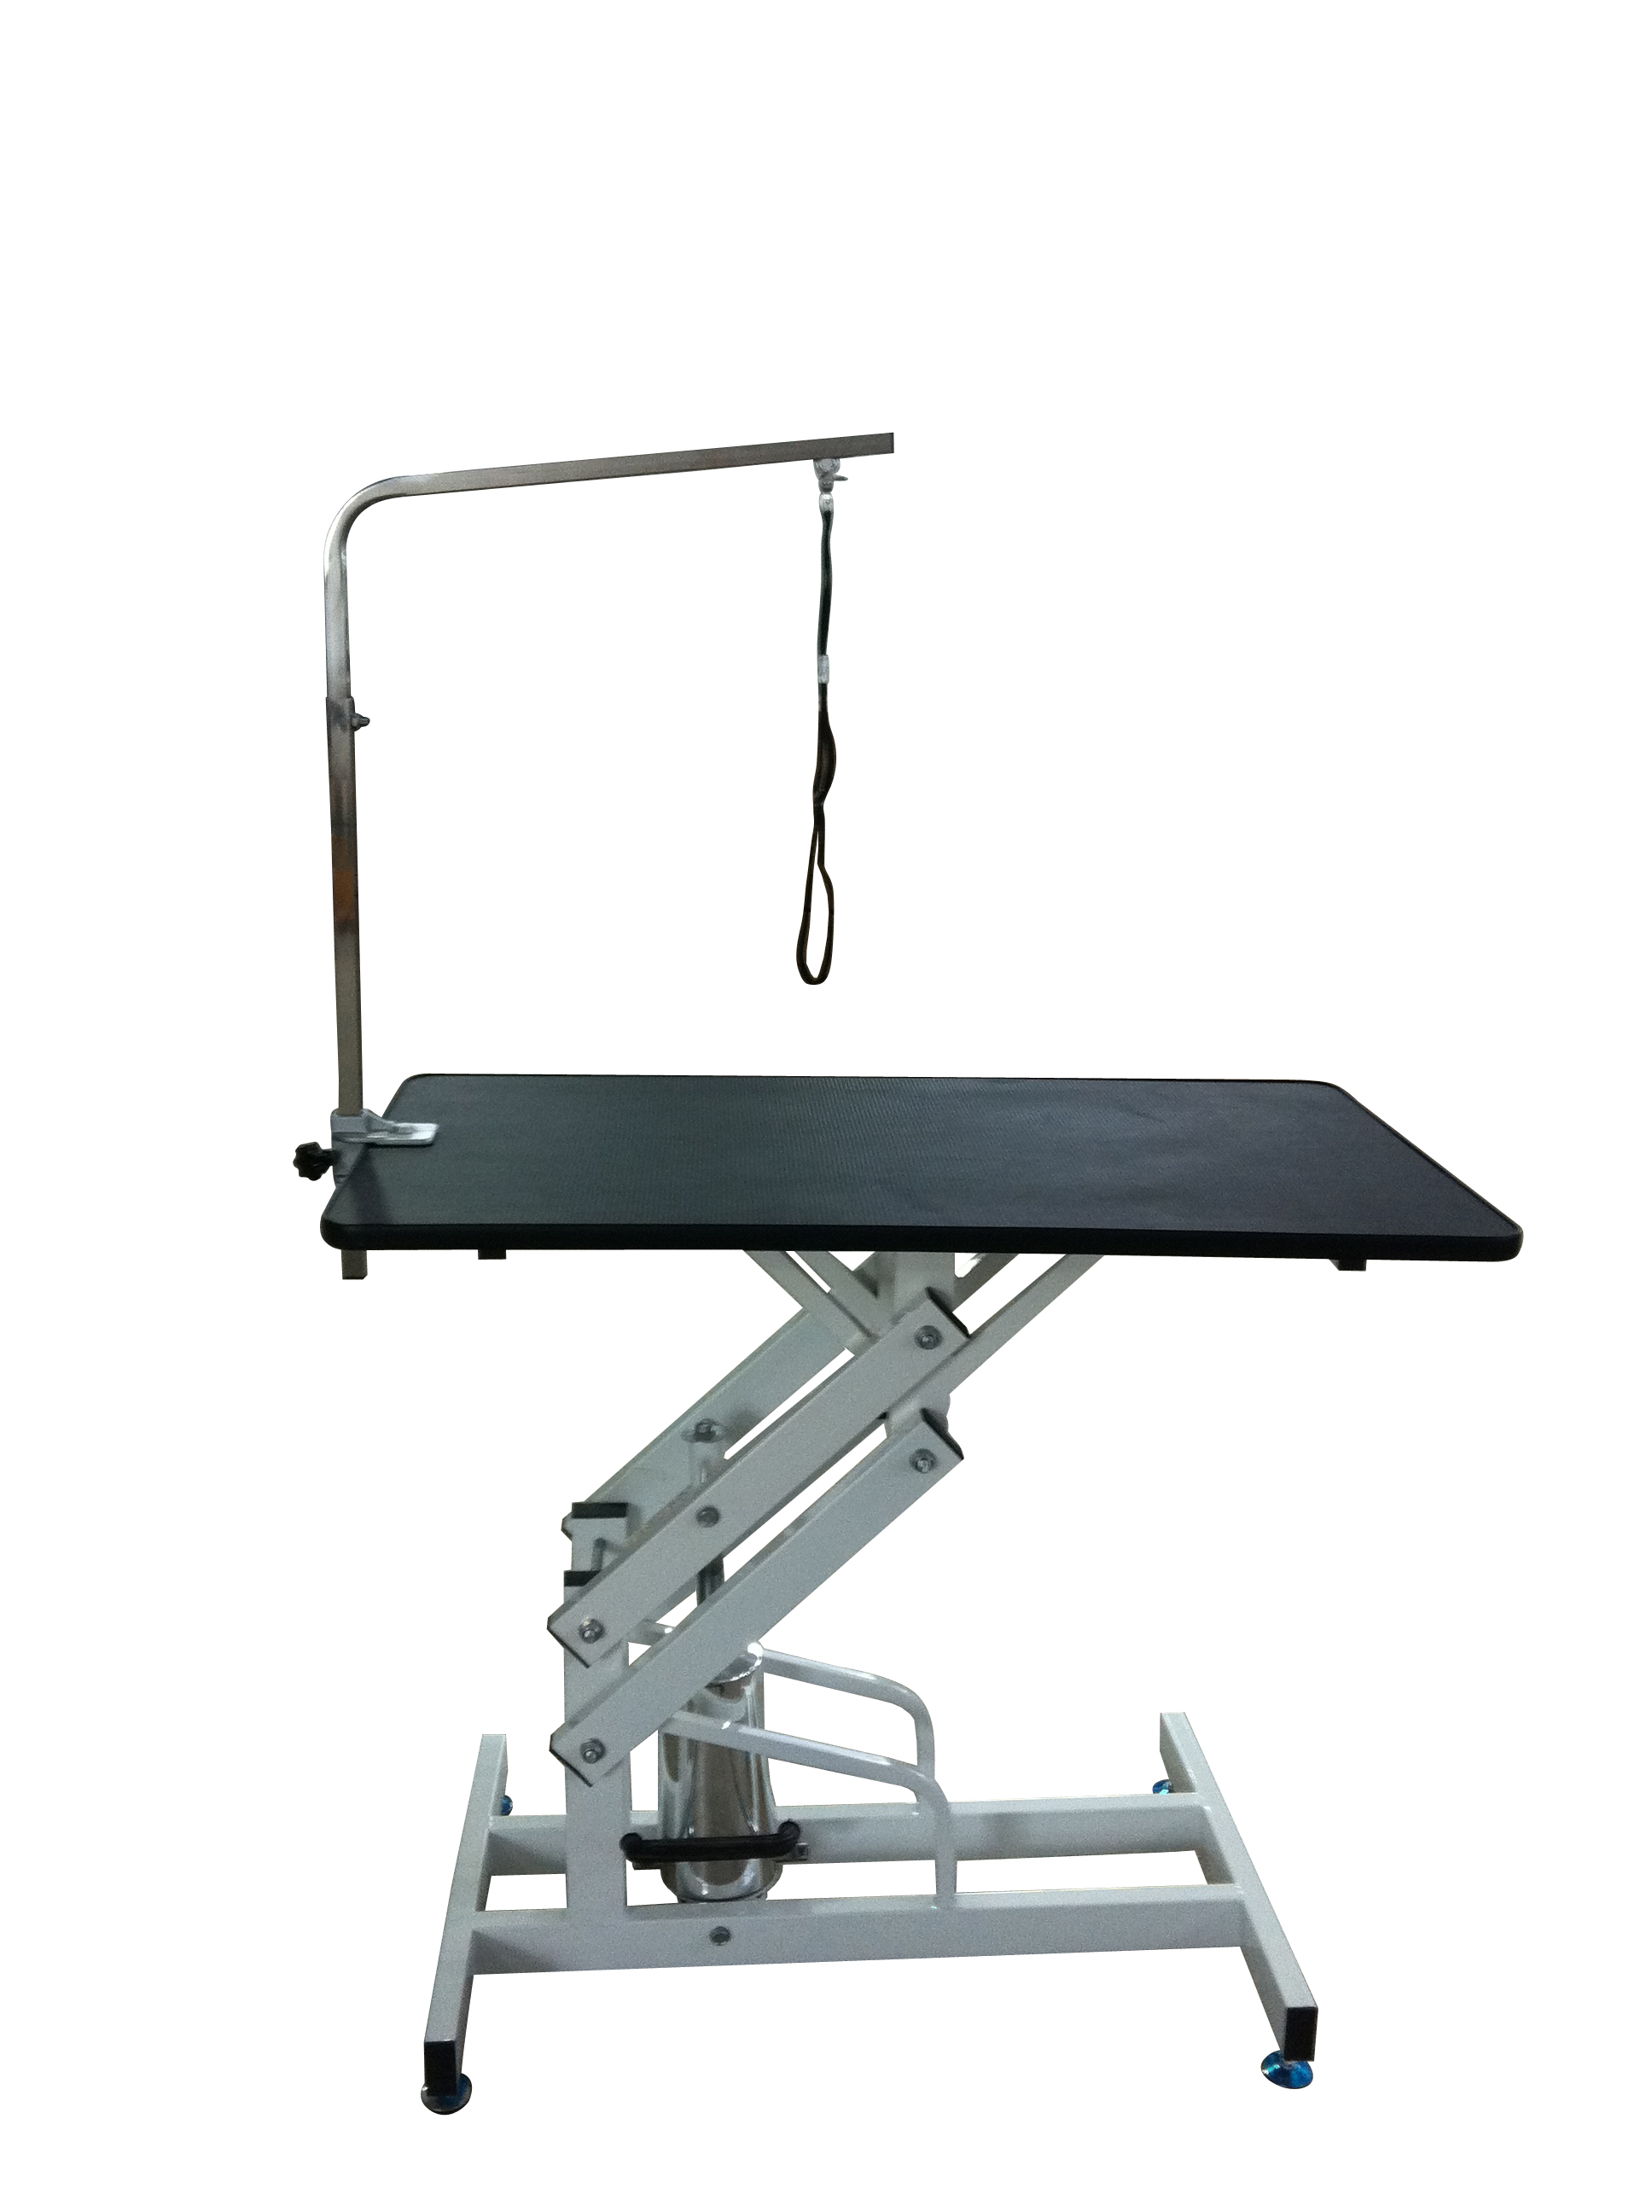 Hydraulic 36 Dog Lift : New deluxe z lift strong professional hydraulic pet cat